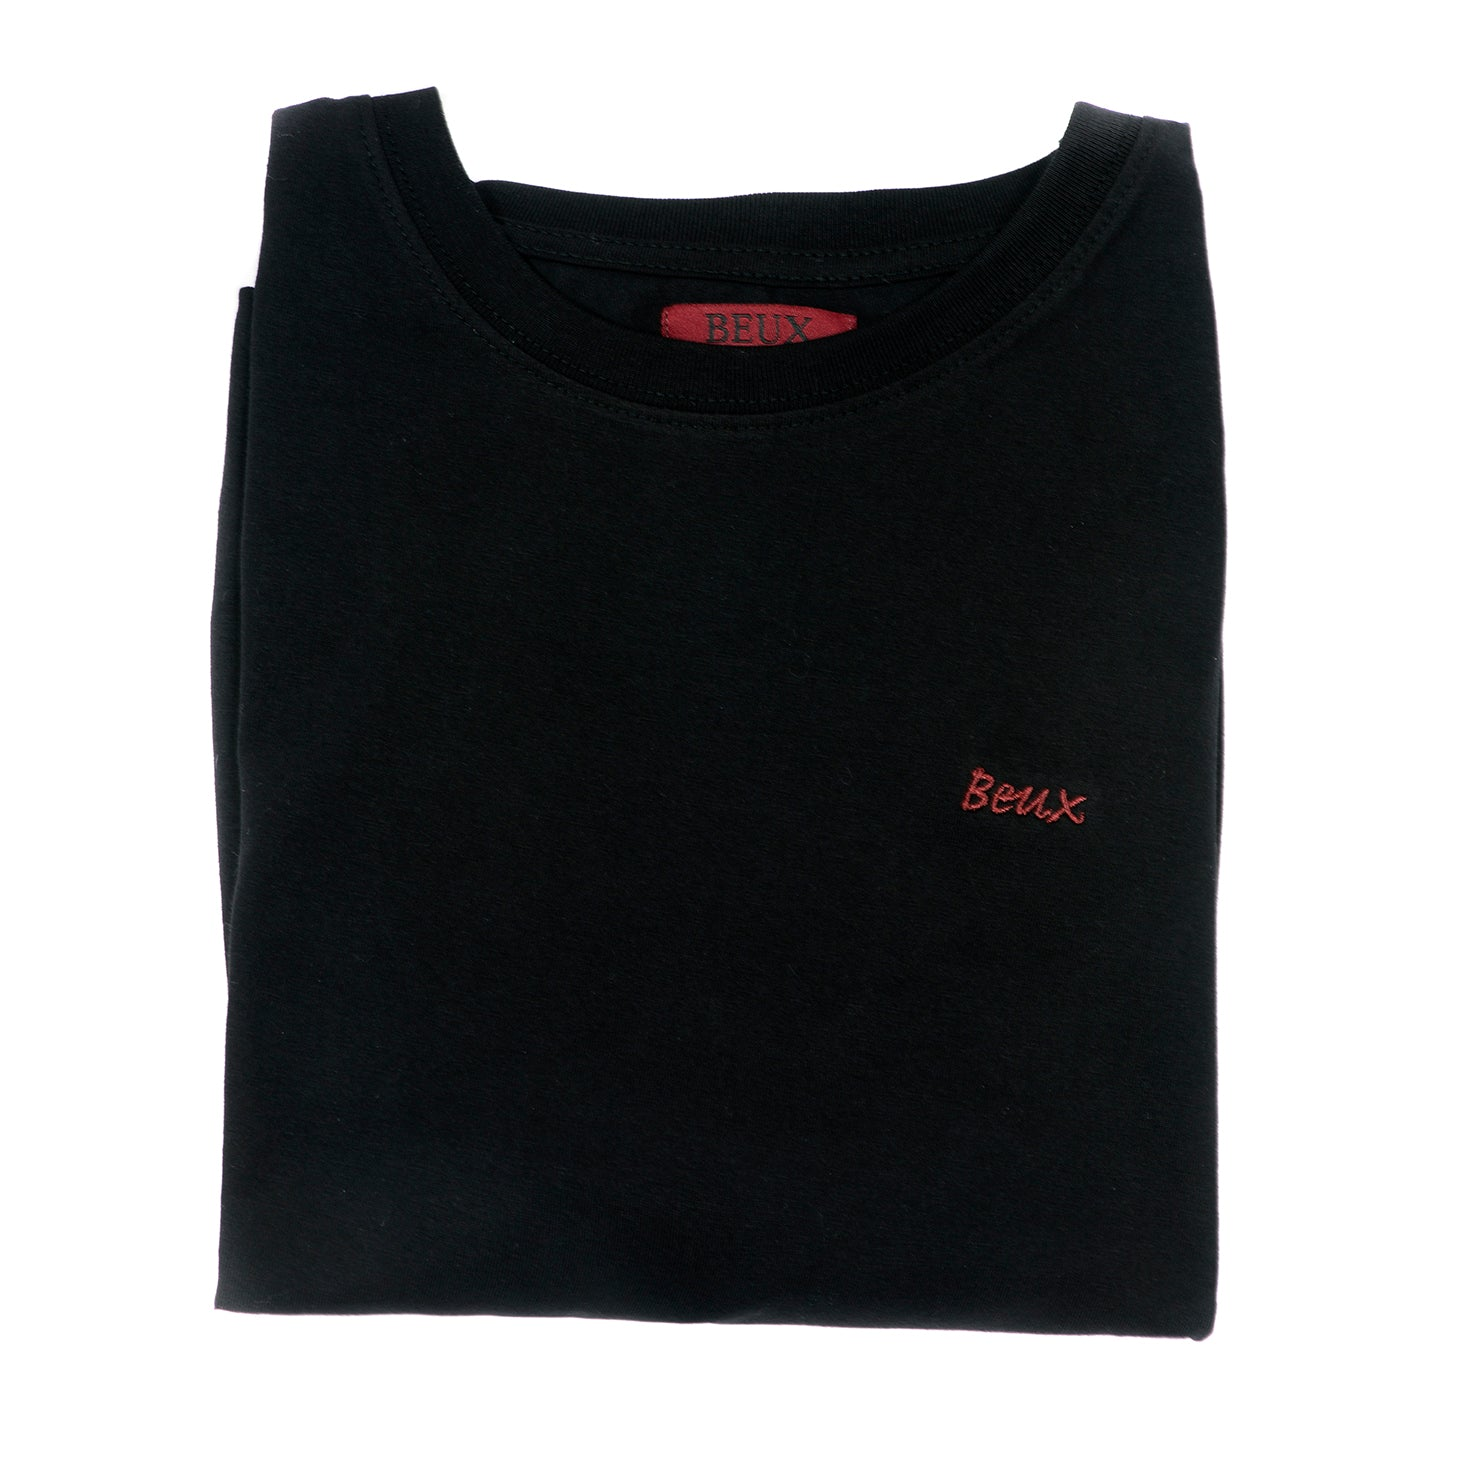 Folded black t-shirt